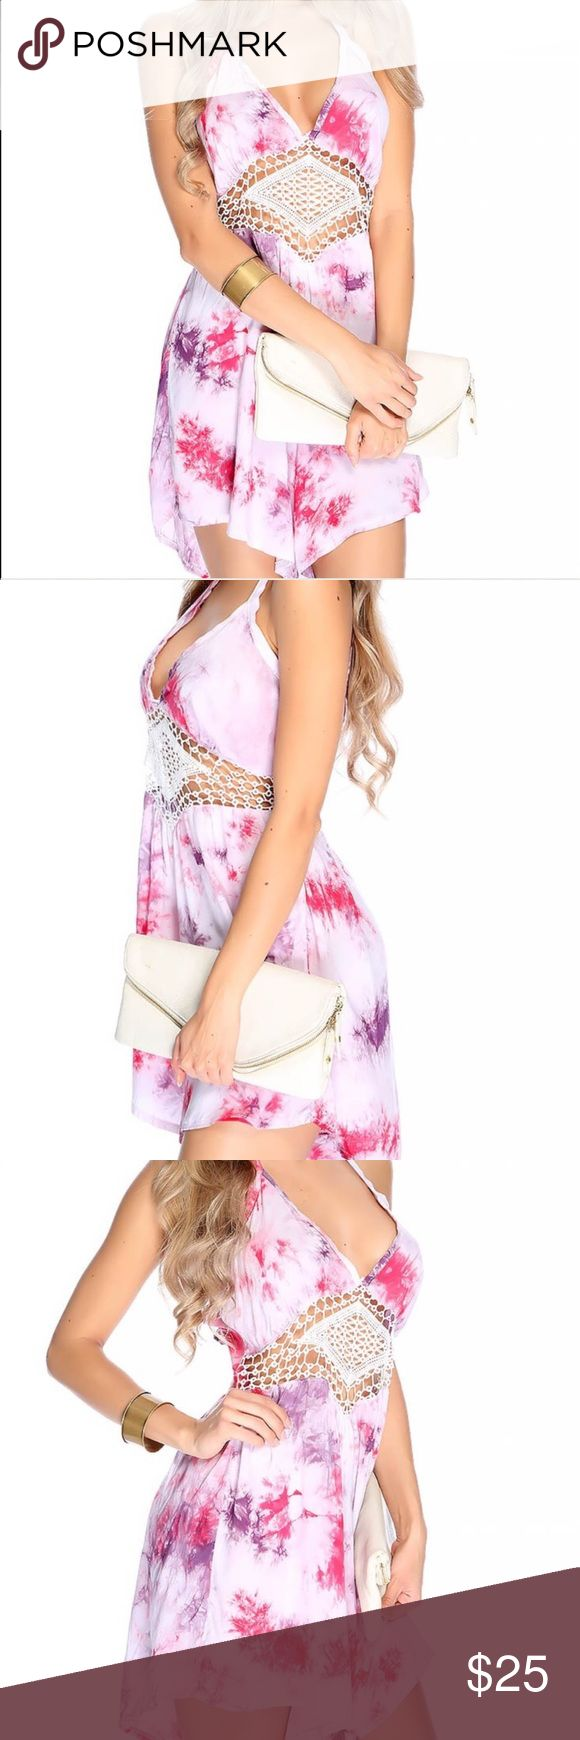 Tie Dye Romper Pink Summer Be summer-ready with this light weight romper, perfect for those hot sunny days! ☀️ Wear with sandals & sunglasses for a day out at the beach by day. Wear with a denim jacket & wedges by night! The crochet adds extra detail & the fun color mix makes it perfection! 💜💞 kandy kouture Dresses Mini